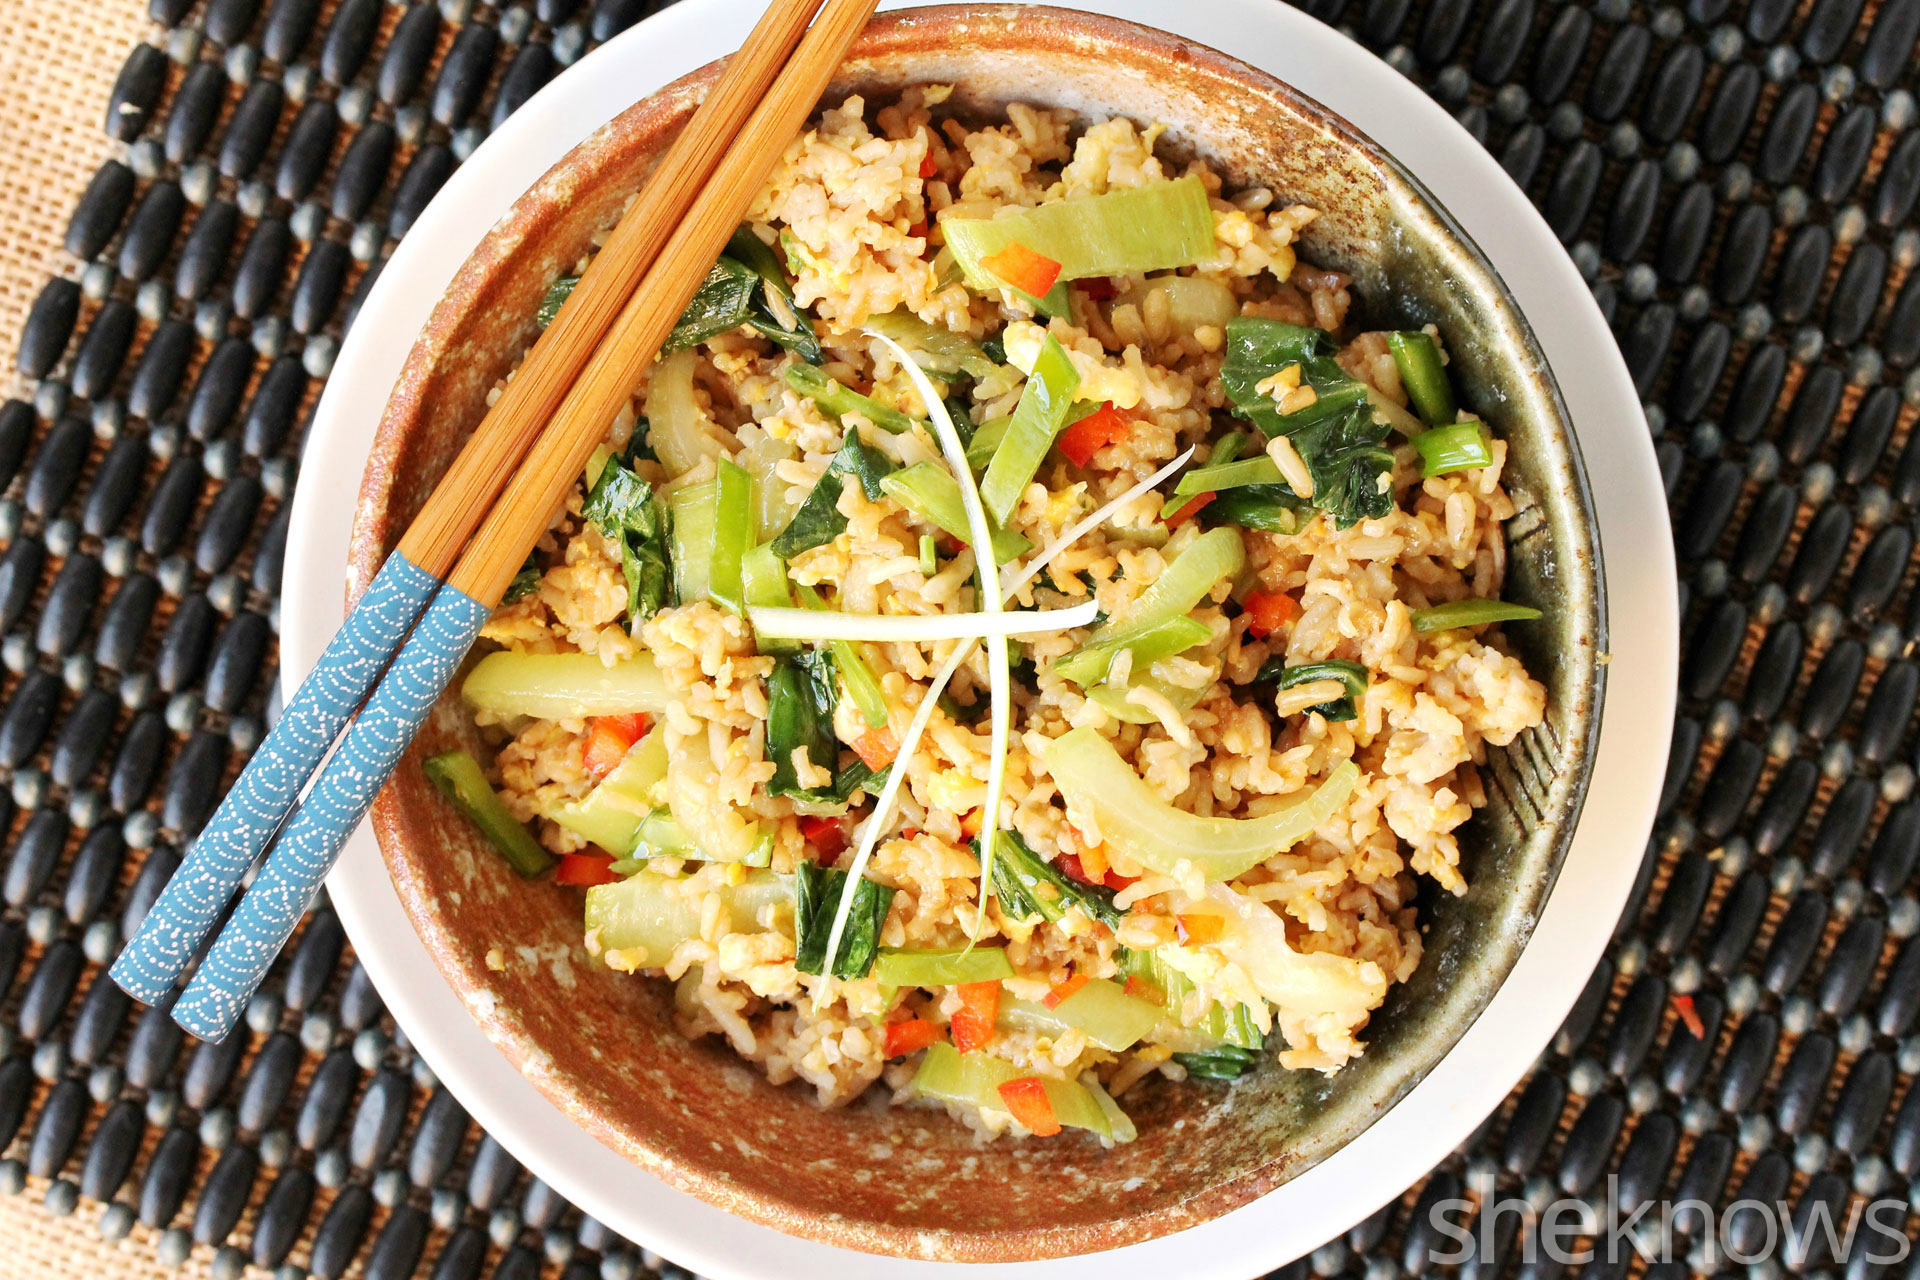 1 Bok choy and fried rice